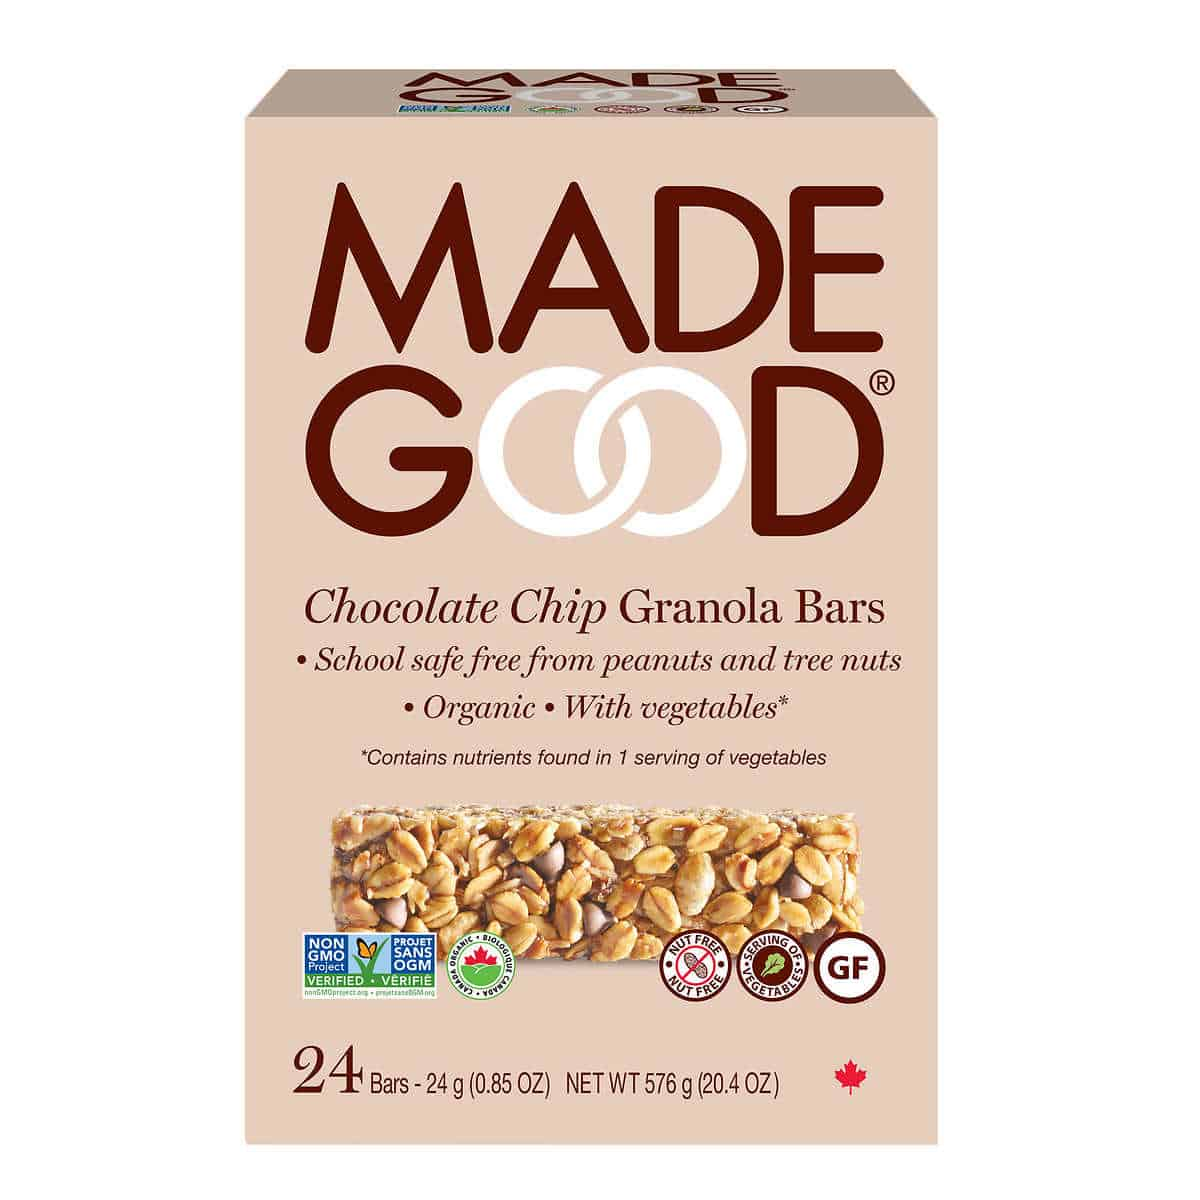 """A box of chocolate chip granola bars from the brand """"Made Good""""."""